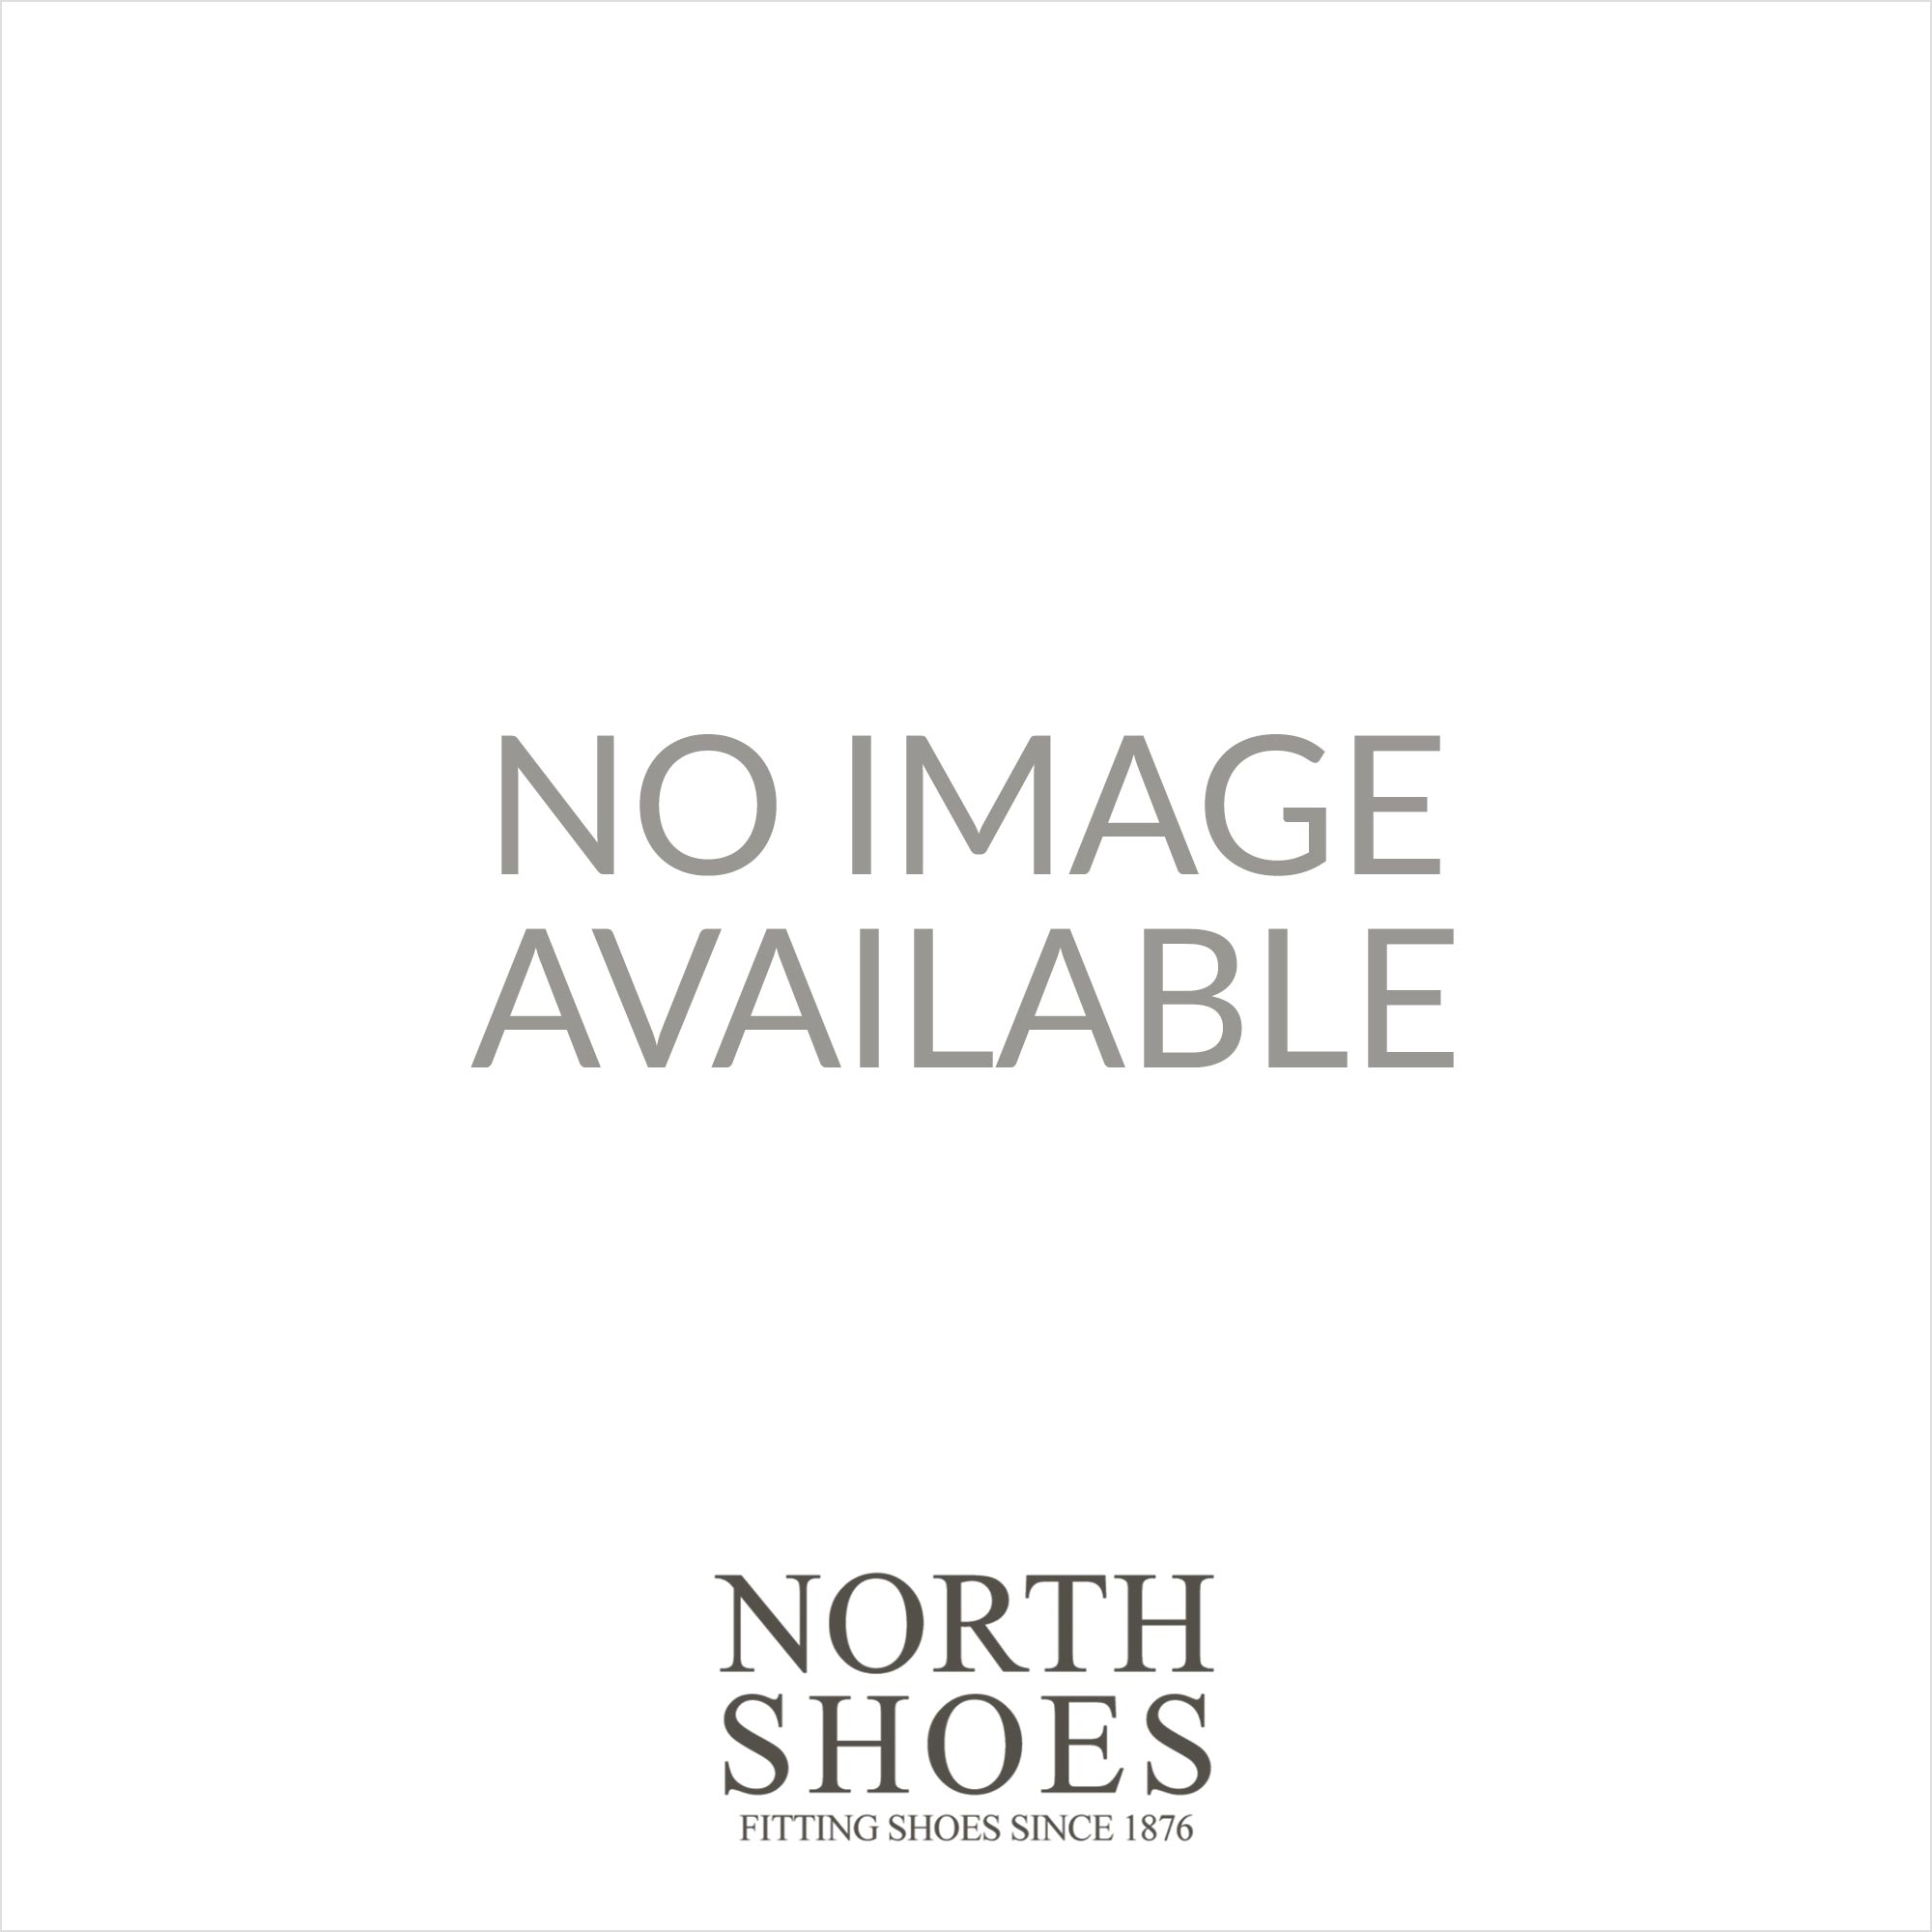 3cc10a661bb96f Clarks Un Vaze Black Womens Sandal - Clarks from North Shoes UK